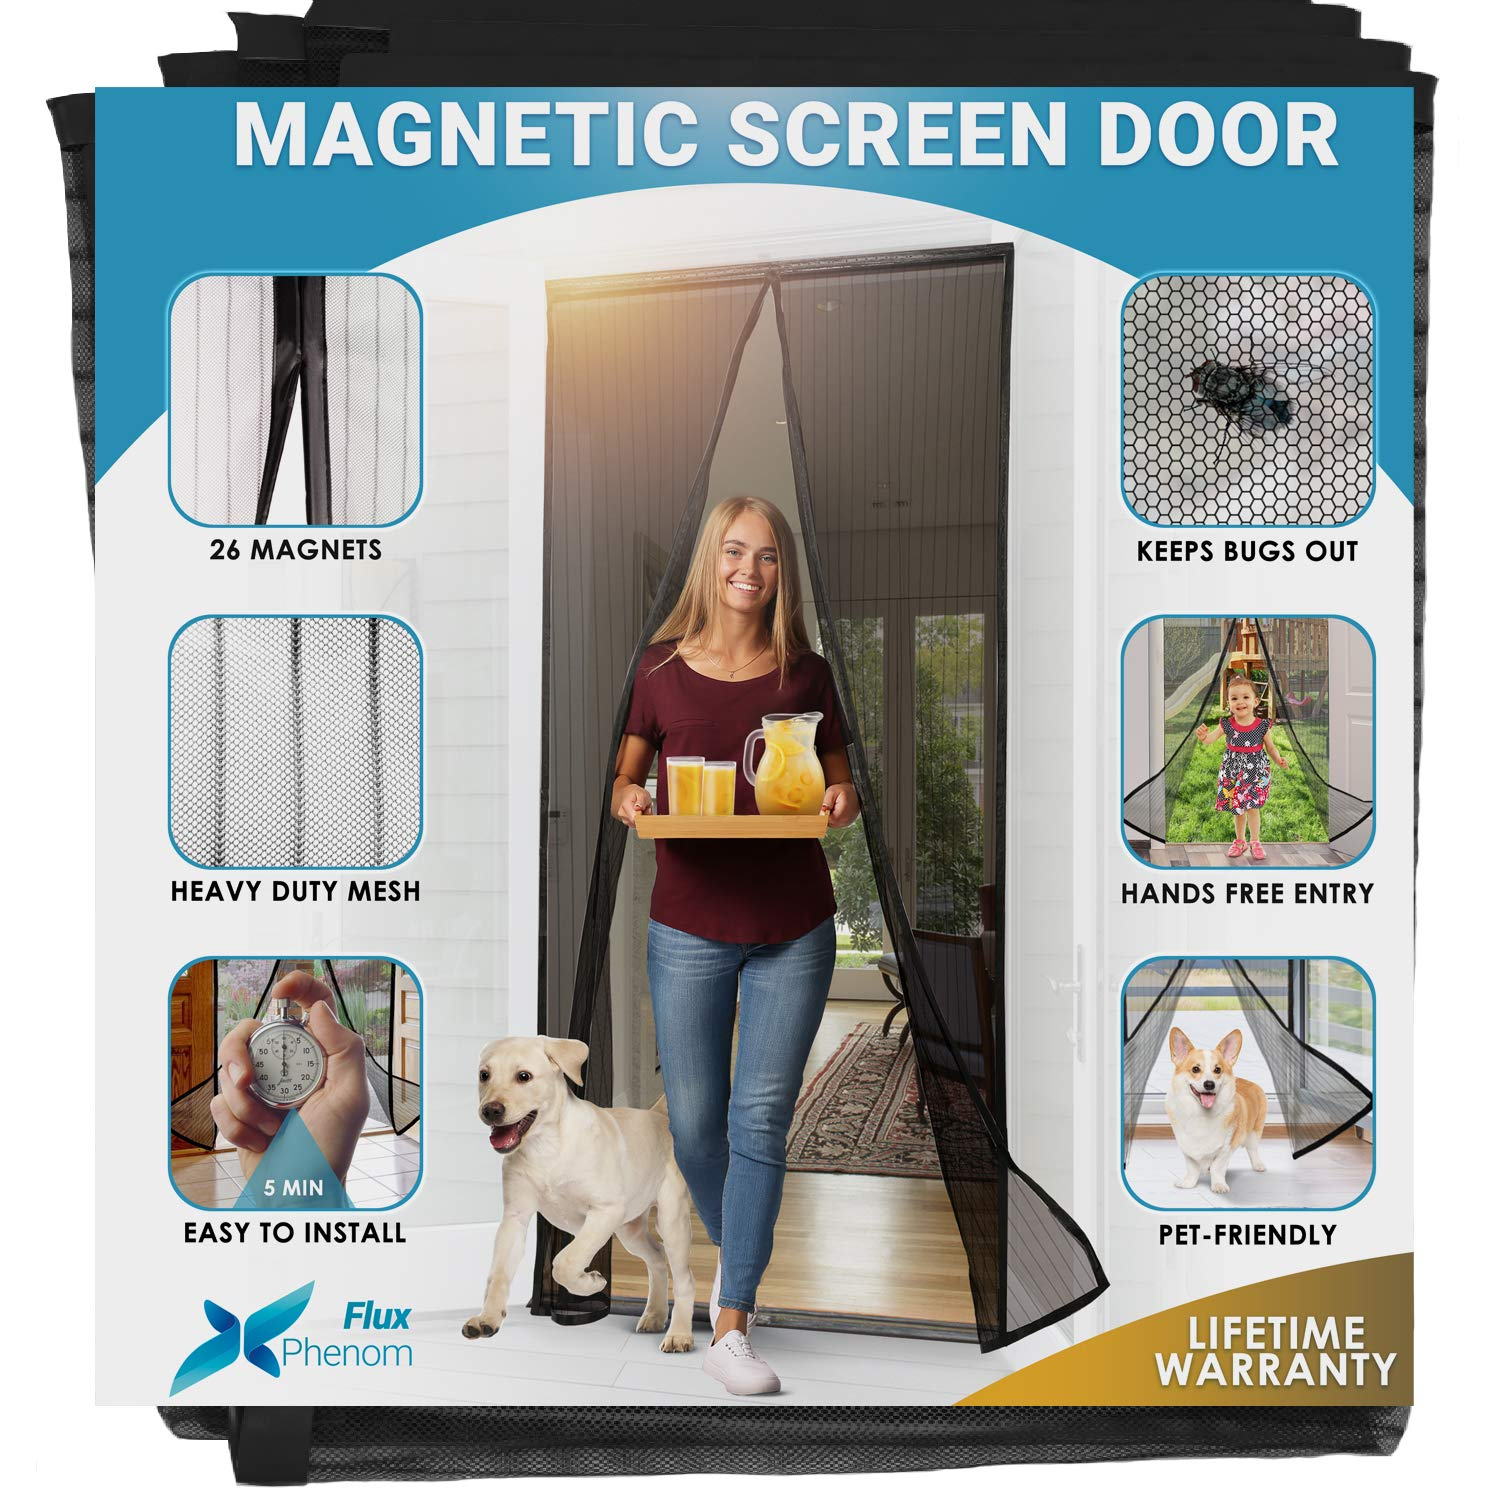 The Best magnetic screen door - Our pick